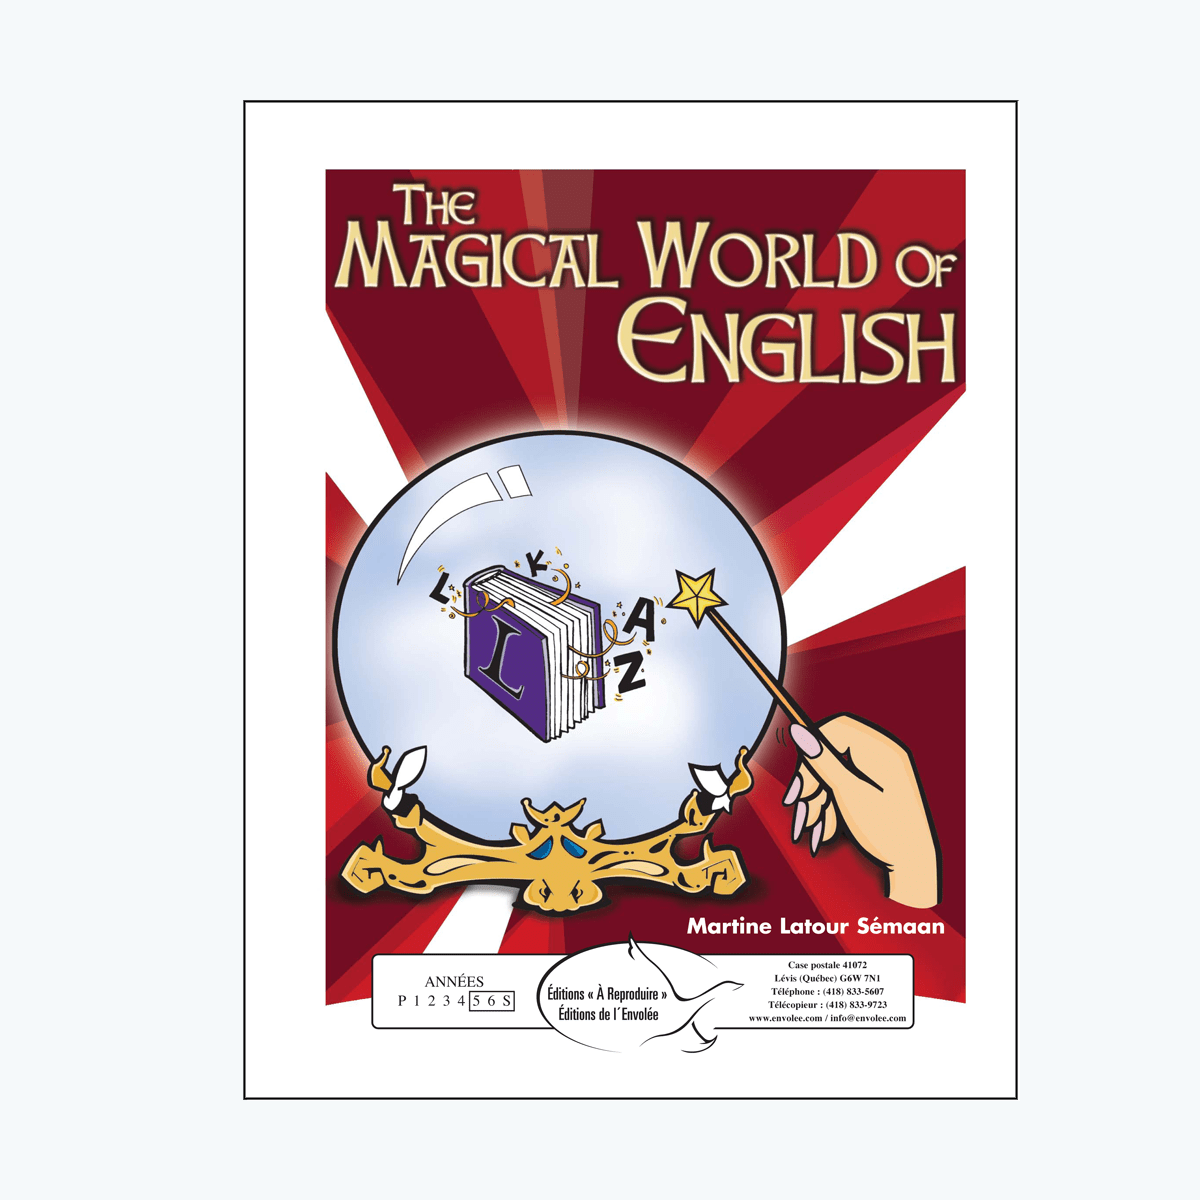 The Magical World of English